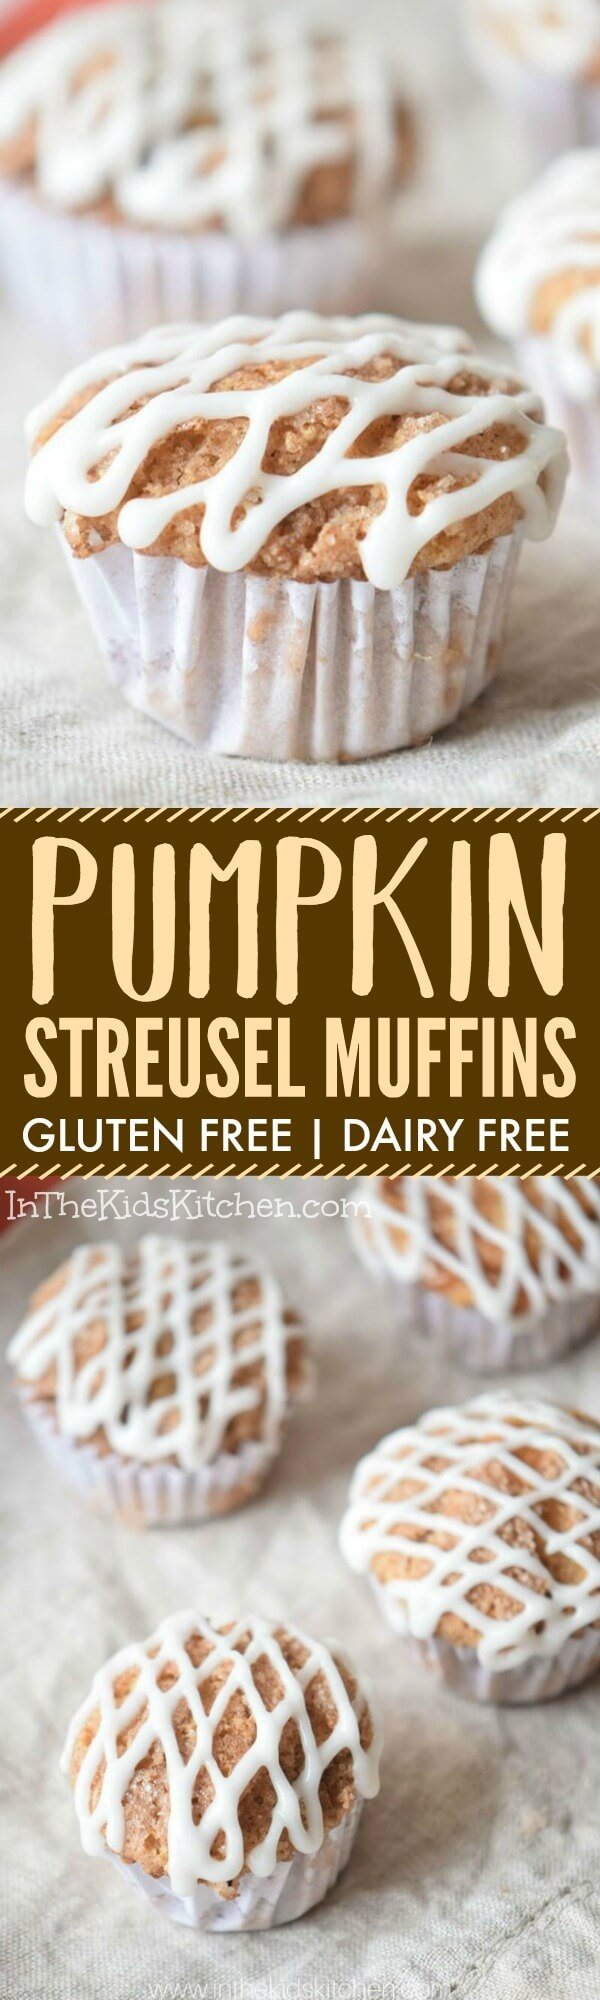 Homemade Gluten Free Pumpkin Streusel Muffinsbring back the fun in holiday baking for everyone! Topped with GF streusel & sweet dairy free glaze.